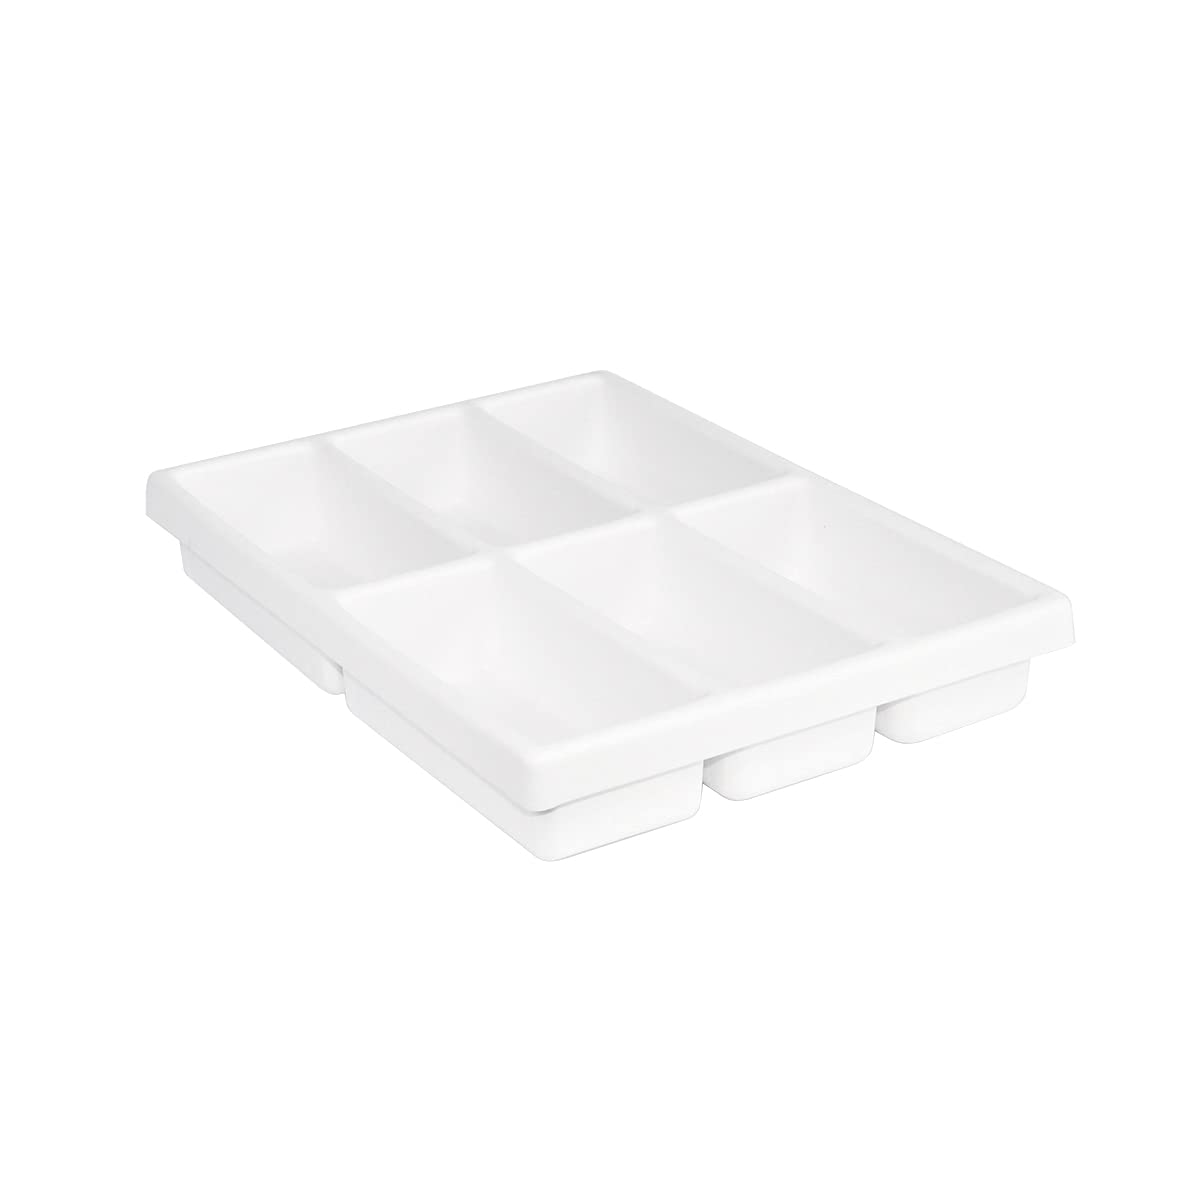 Purchase 5 popular TrippNT 50974 High Impact Styrene Compartment Drawer Organizer 6